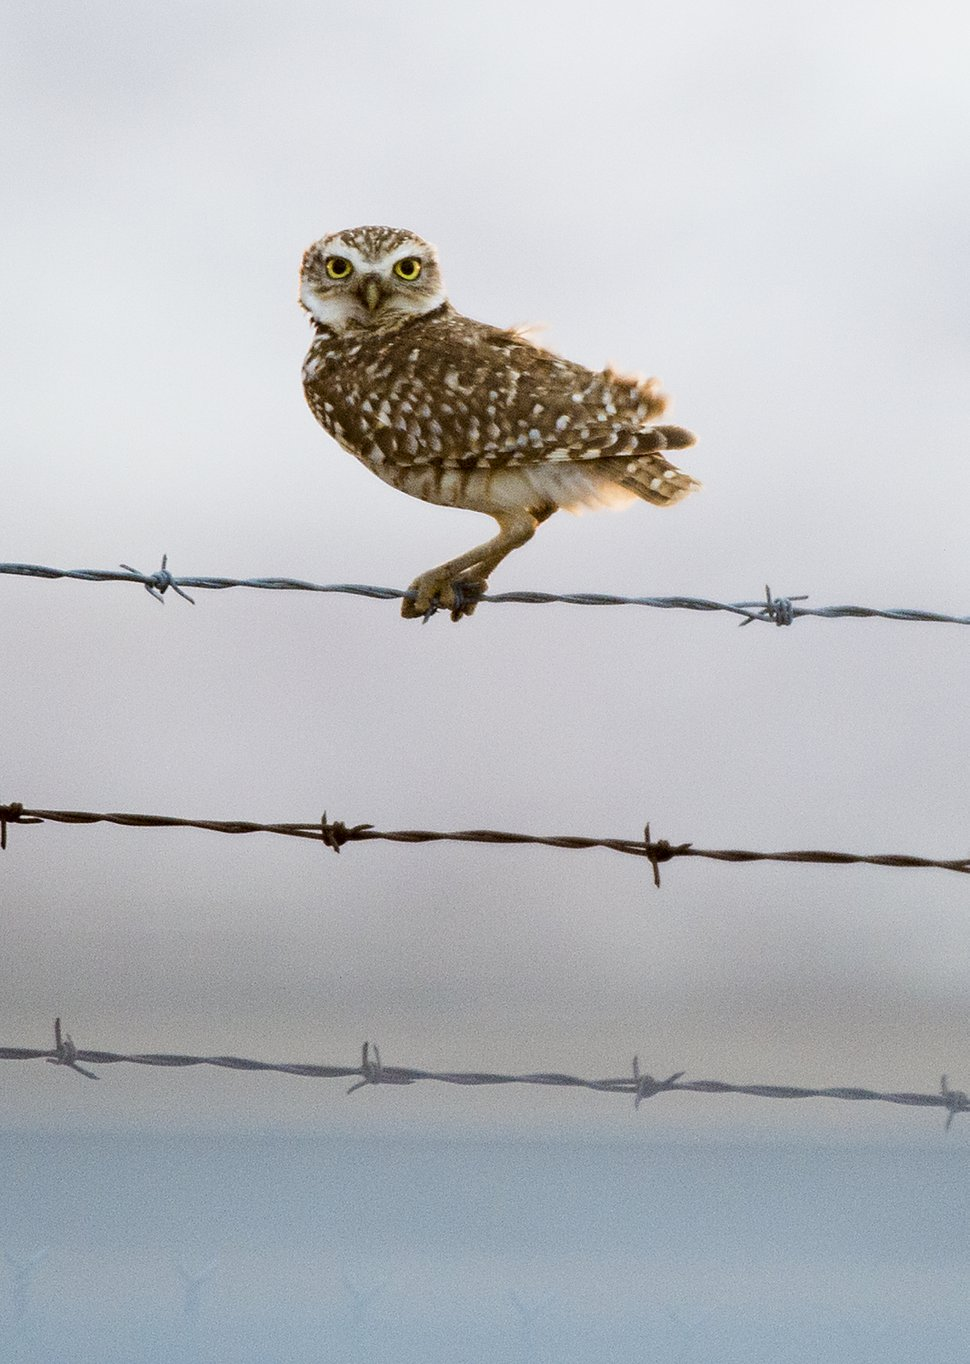 Leah Hogsten | The Salt Lake Tribune A Burrowing Owl rests on the fence surrounding the Salt Lake International Airport. The airport had 280 bird strikes in 2018. Most were minor, but overall they caused at least $674,892 in reported damage. There were 171 bird strikes with small song birds; 39 with waterfowl, 36 with raptors, 13 with bats and four with pigeons or doves. Another 17 strikes were with unknown types of birds.